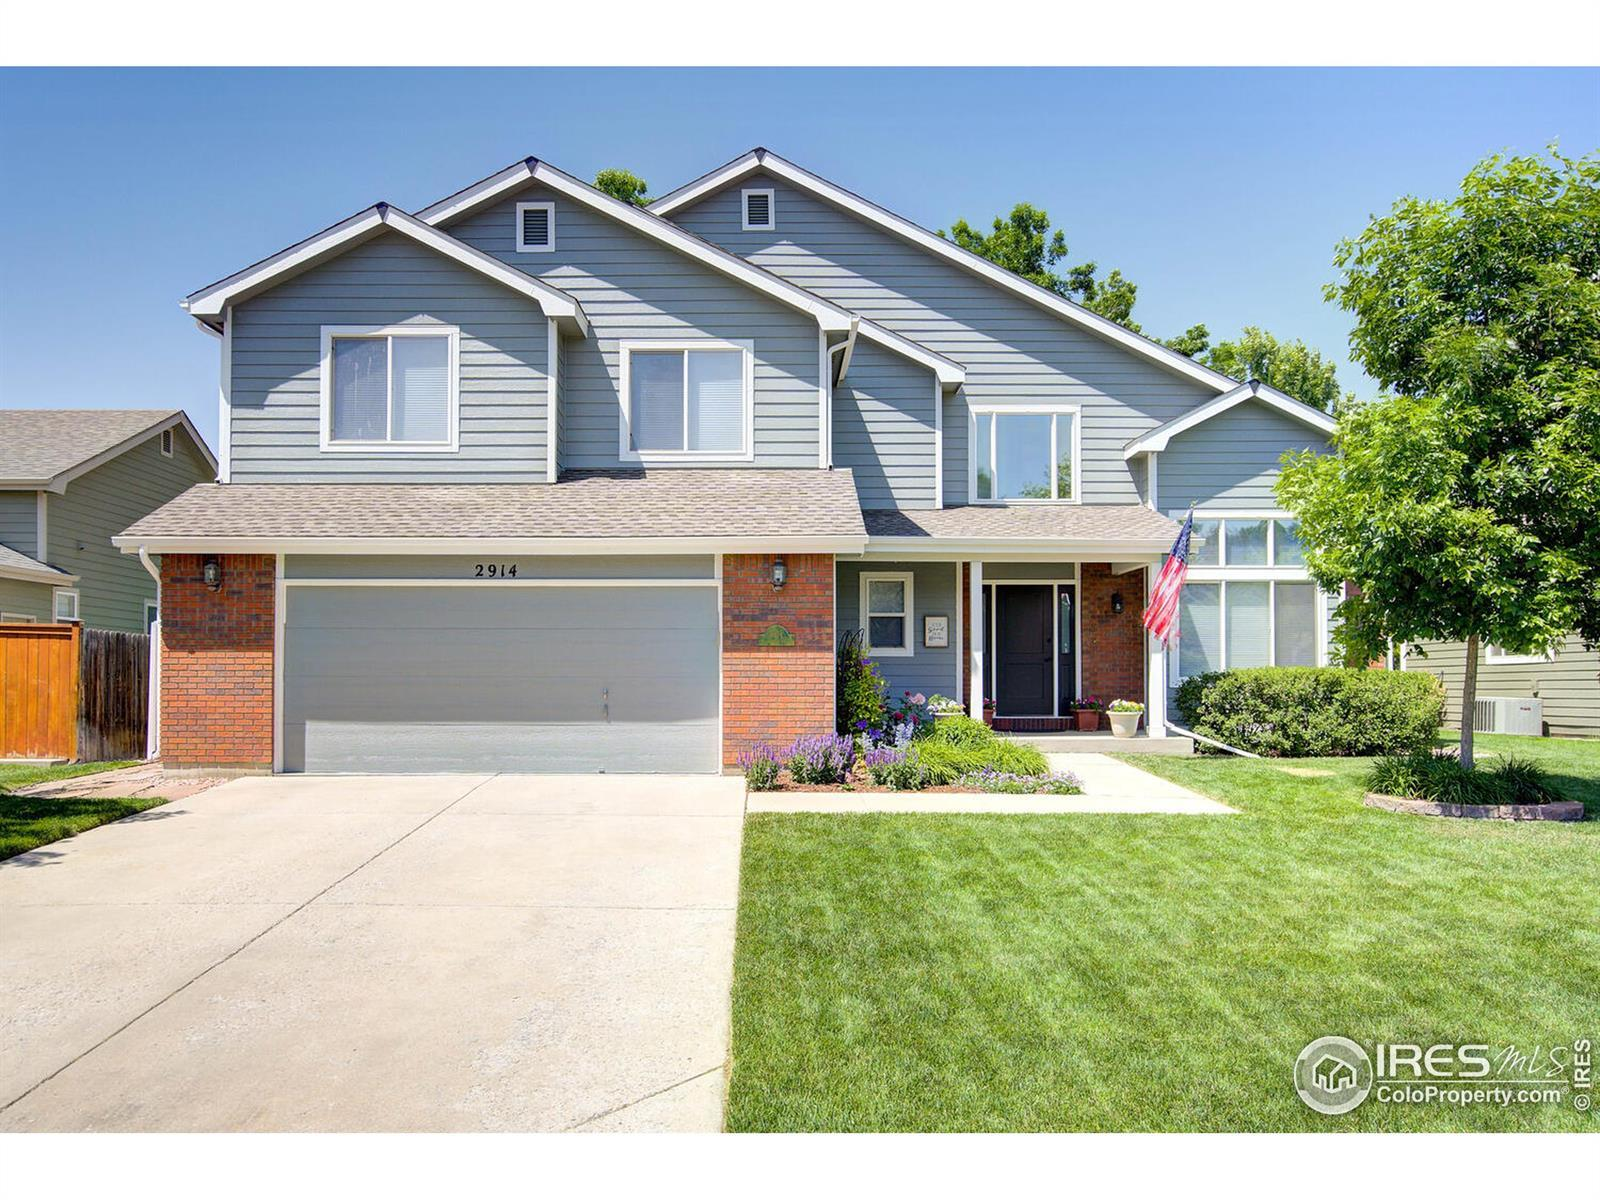 2914 Stonehaven Drive, Fort Collins, CO 80525 - #: IR946677